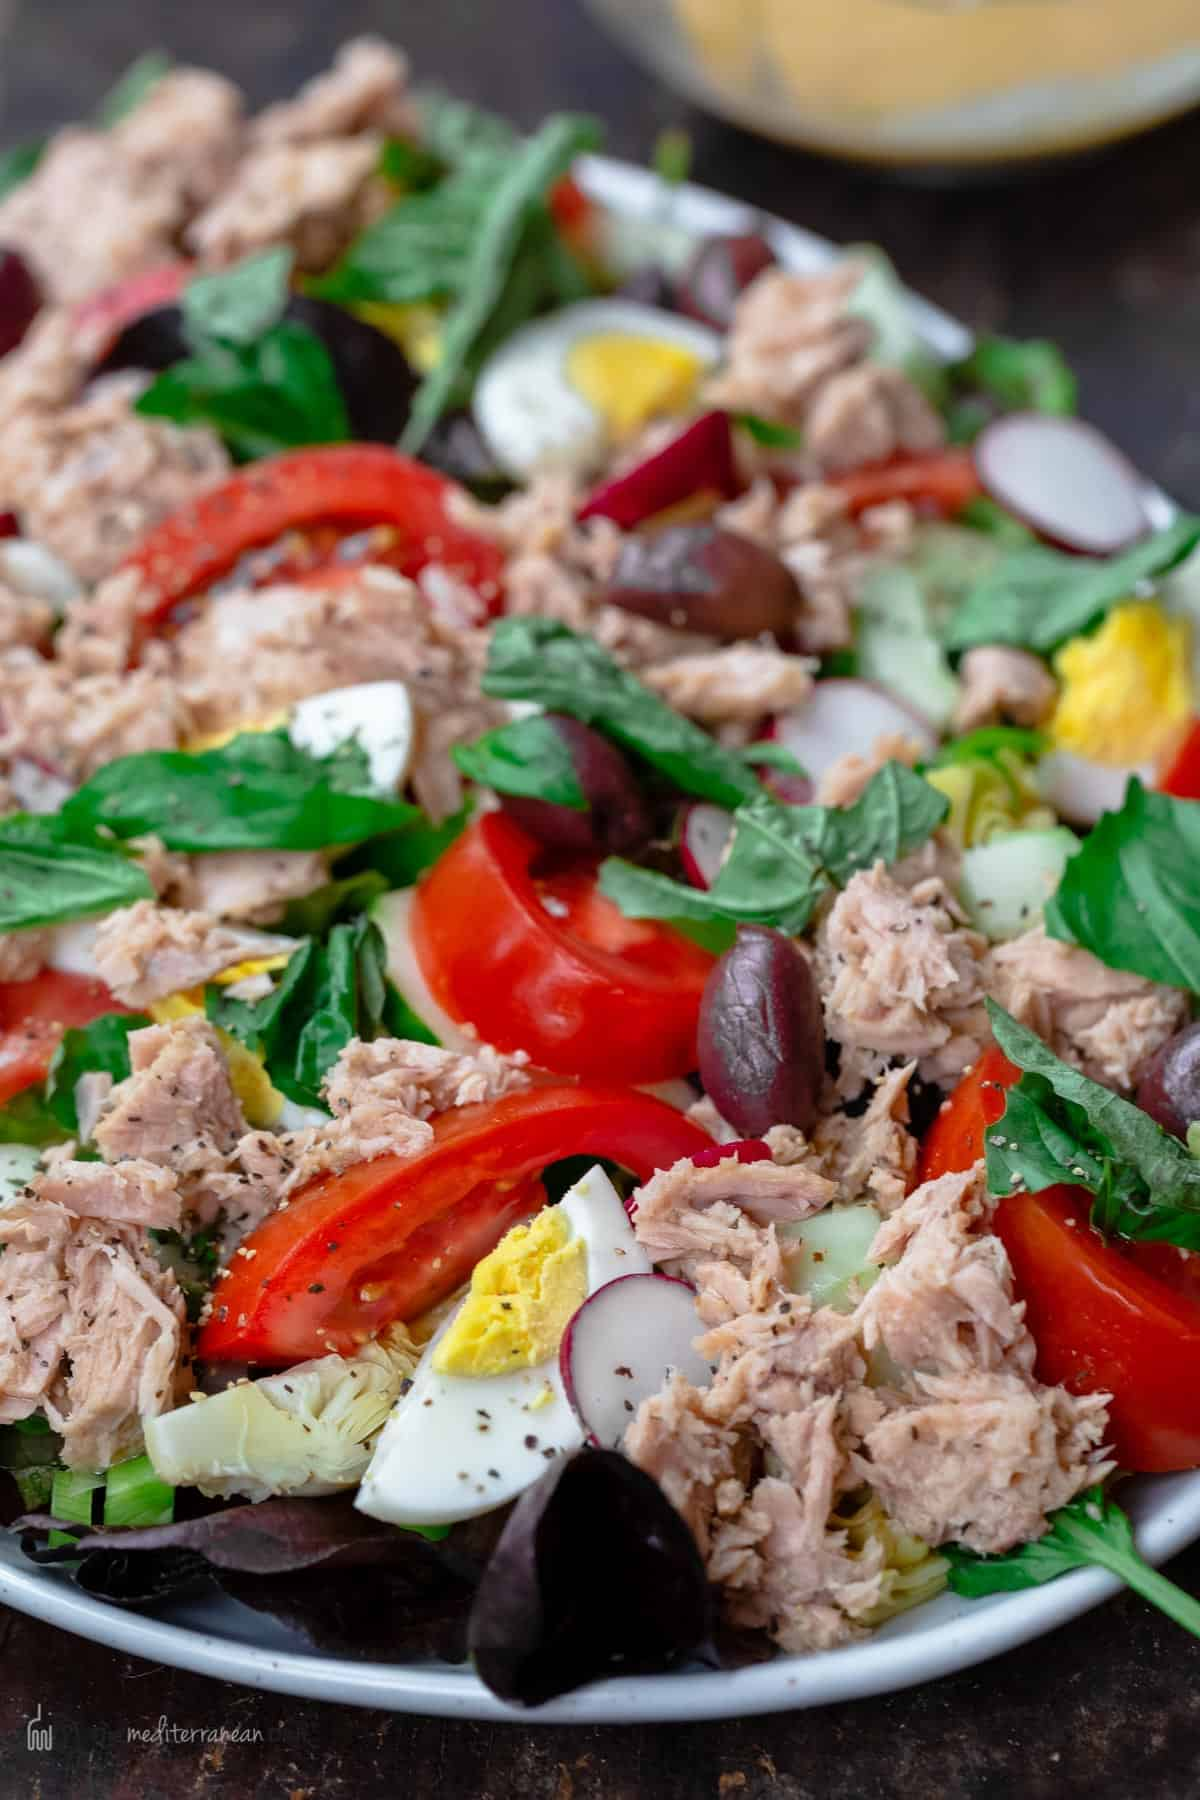 Close-up photo of tuna nicoise salad on a platter with a side bowl for dressing